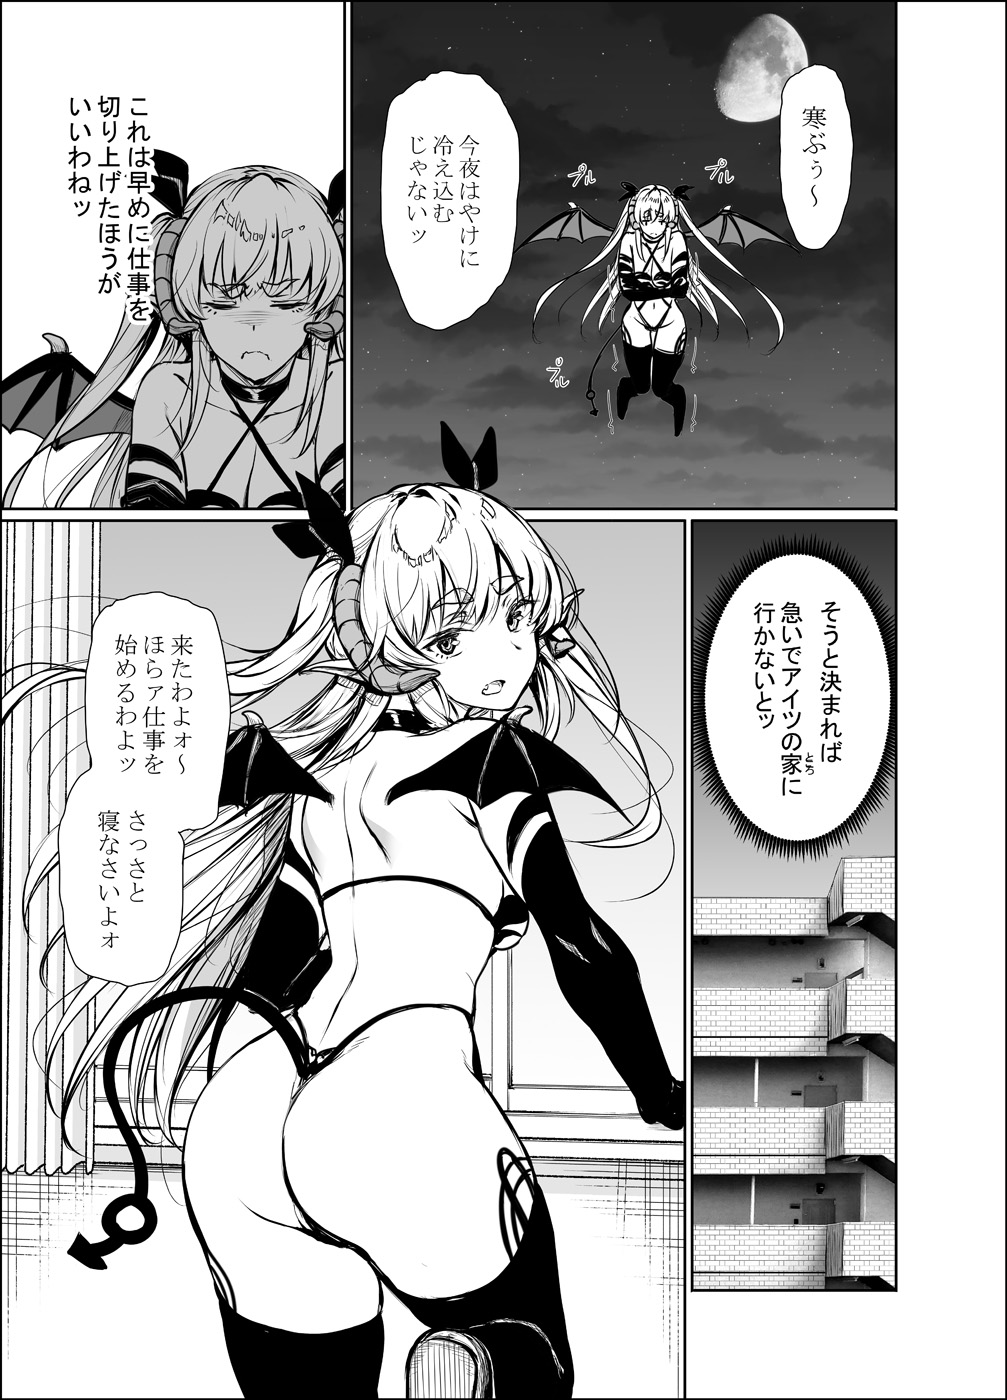 1girl ass bare_shoulders boots bow closed_eyes cold comic commentary demon_girl demon_horns demon_tail demon_wings eyebrows_visible_through_hair flying gentsuki greyscale hair_bow highres horns lily_(gentsuki) long_hair monochrome moon original pointy_ears revealing_clothes solo speech_bubble succubus tail thick_eyebrows thigh-highs thigh_boots trembling two_side_up wings